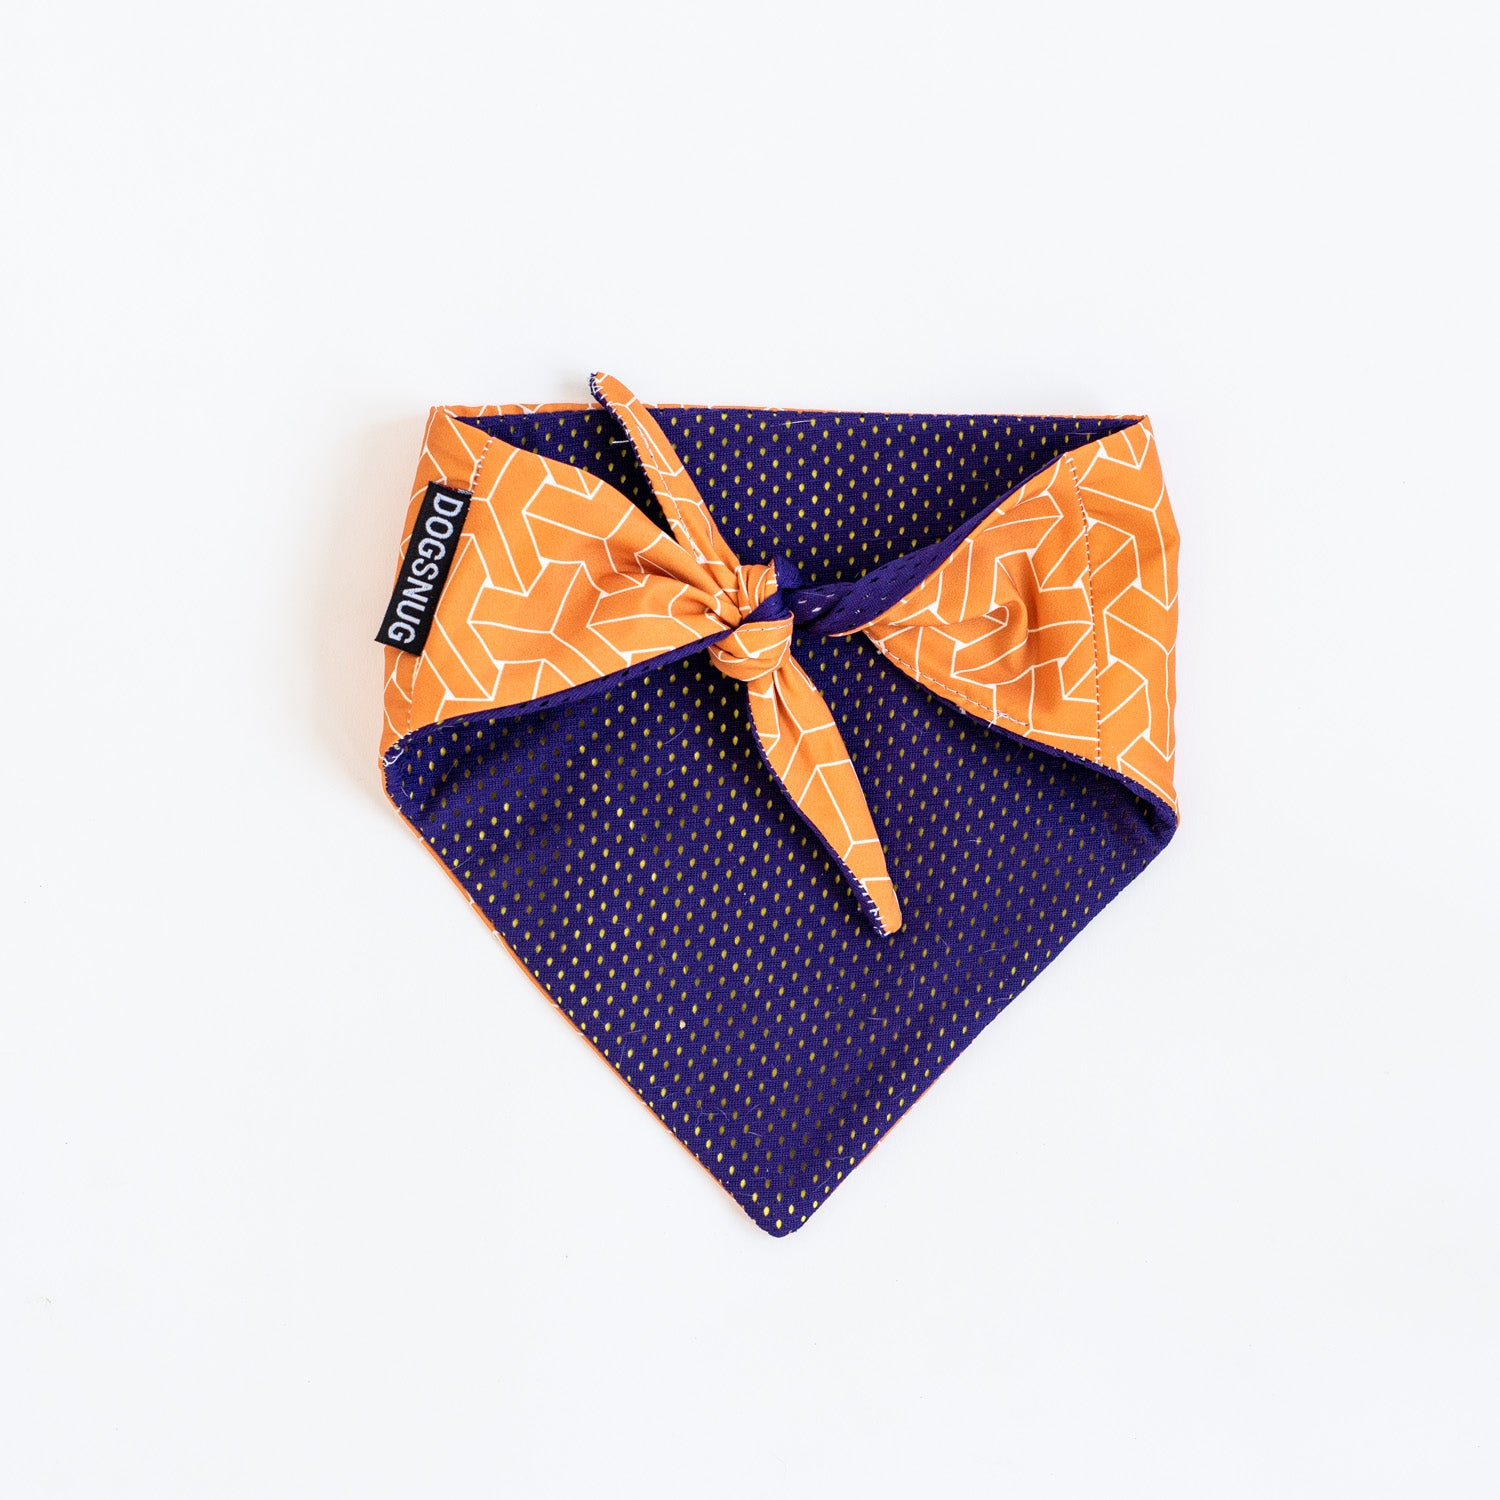 Cooling Dog Bandana Geometric Print